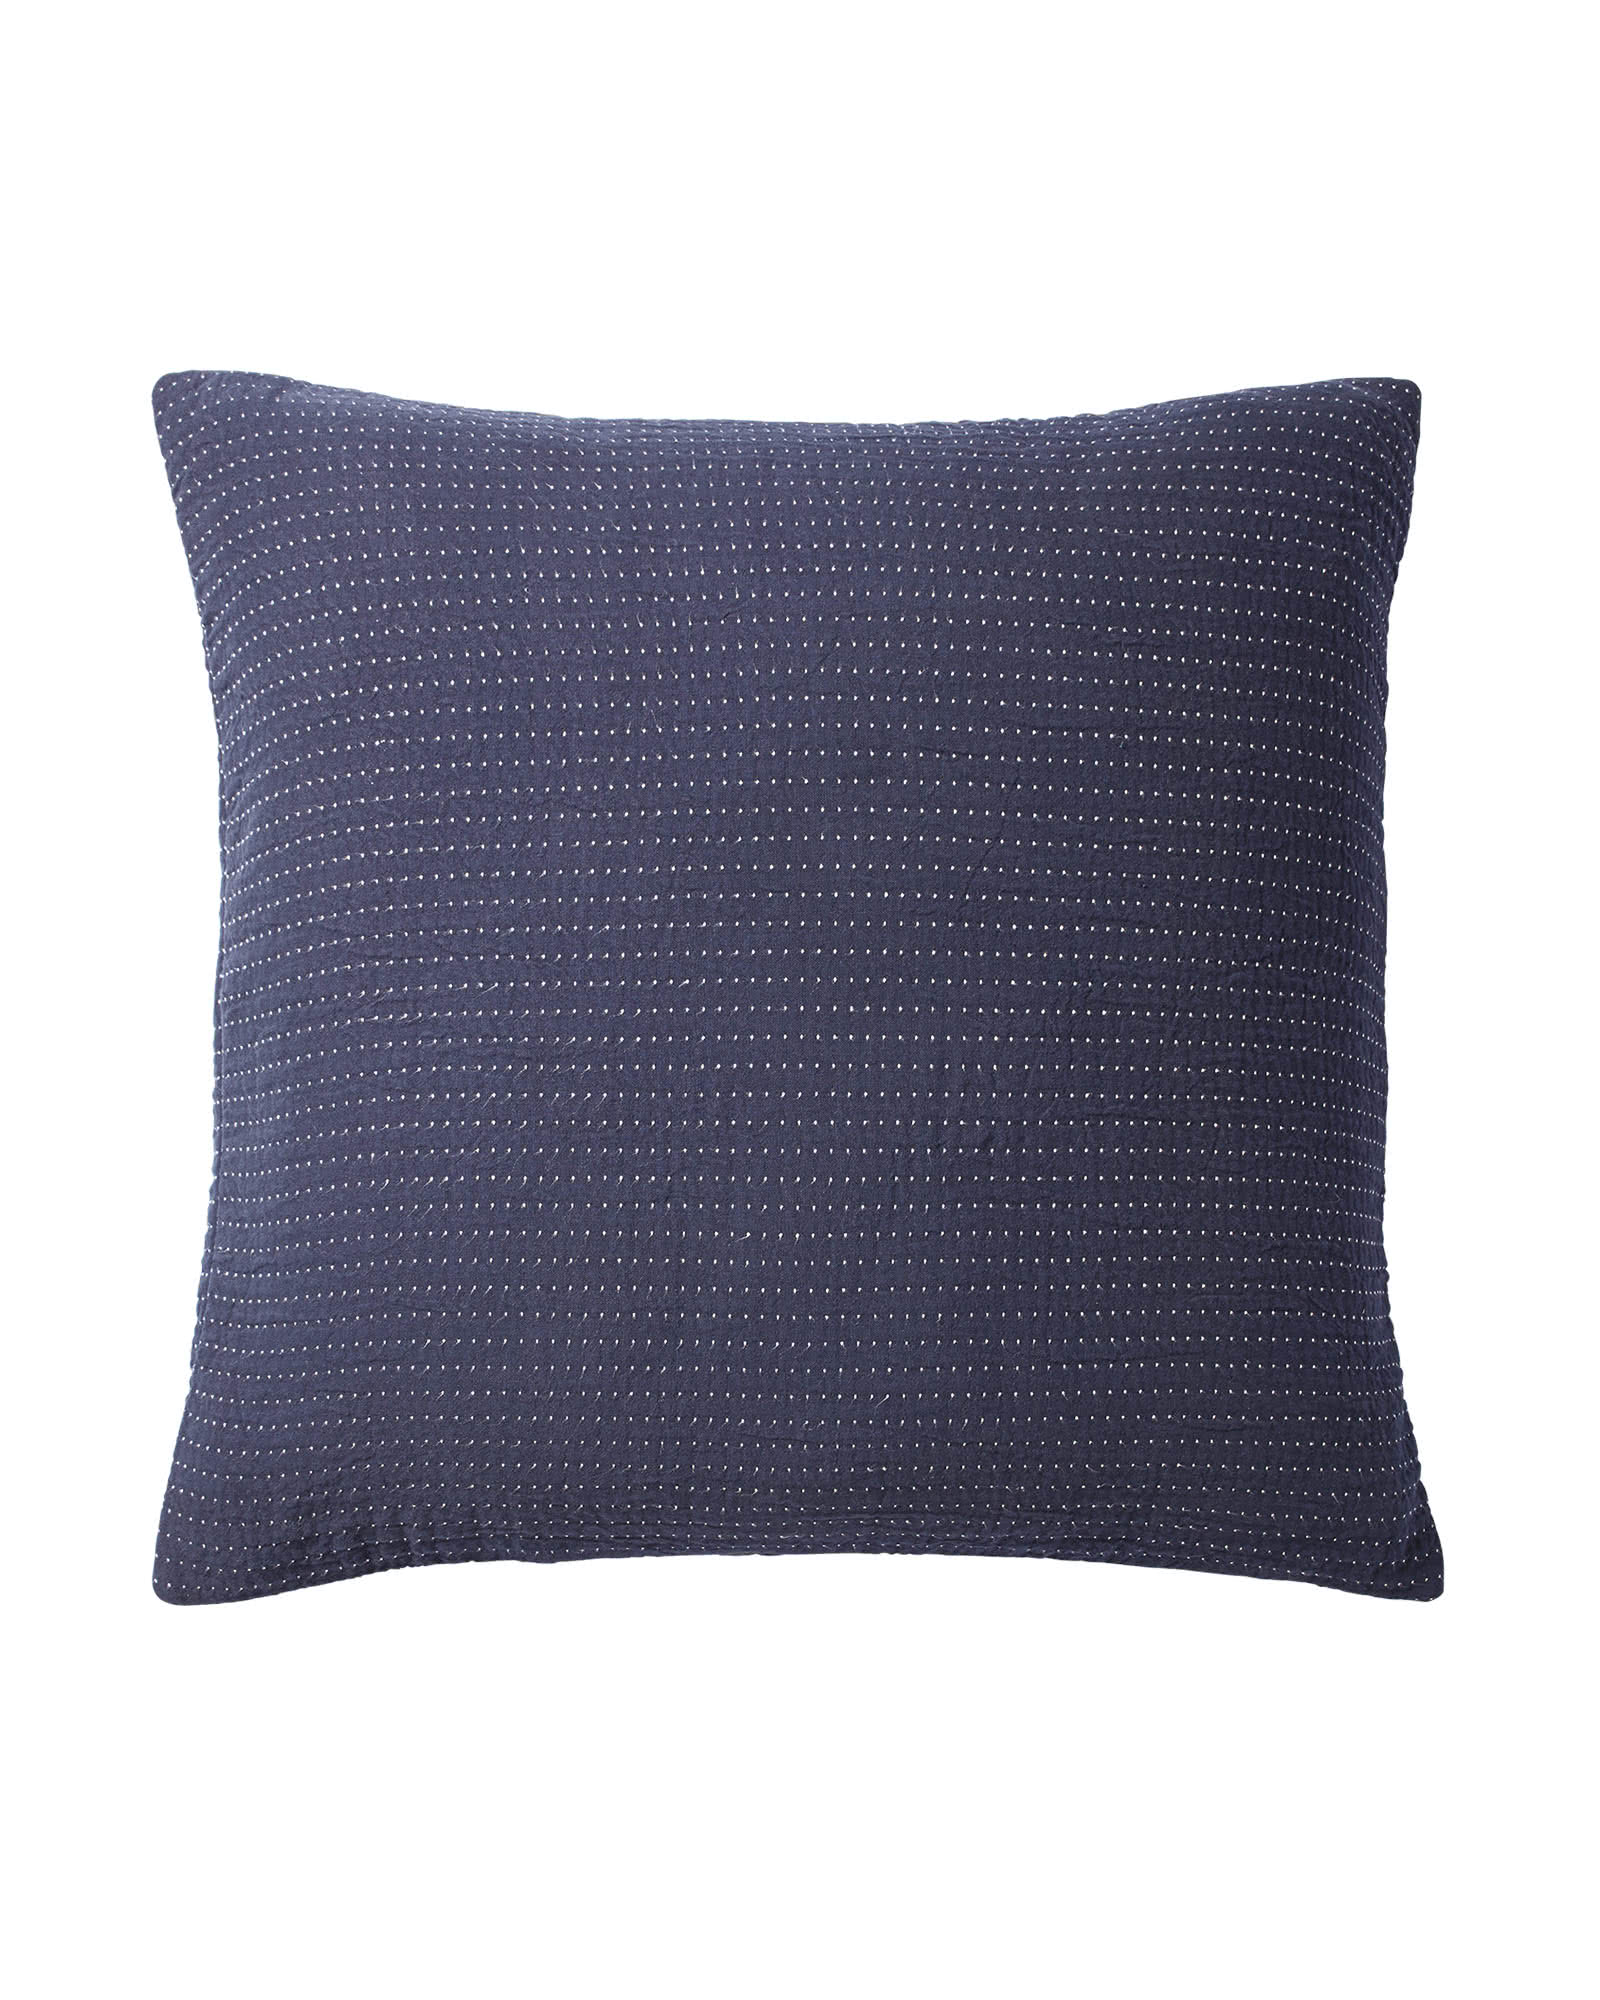 Pickstitch Matelassé Euro Sham, Navy